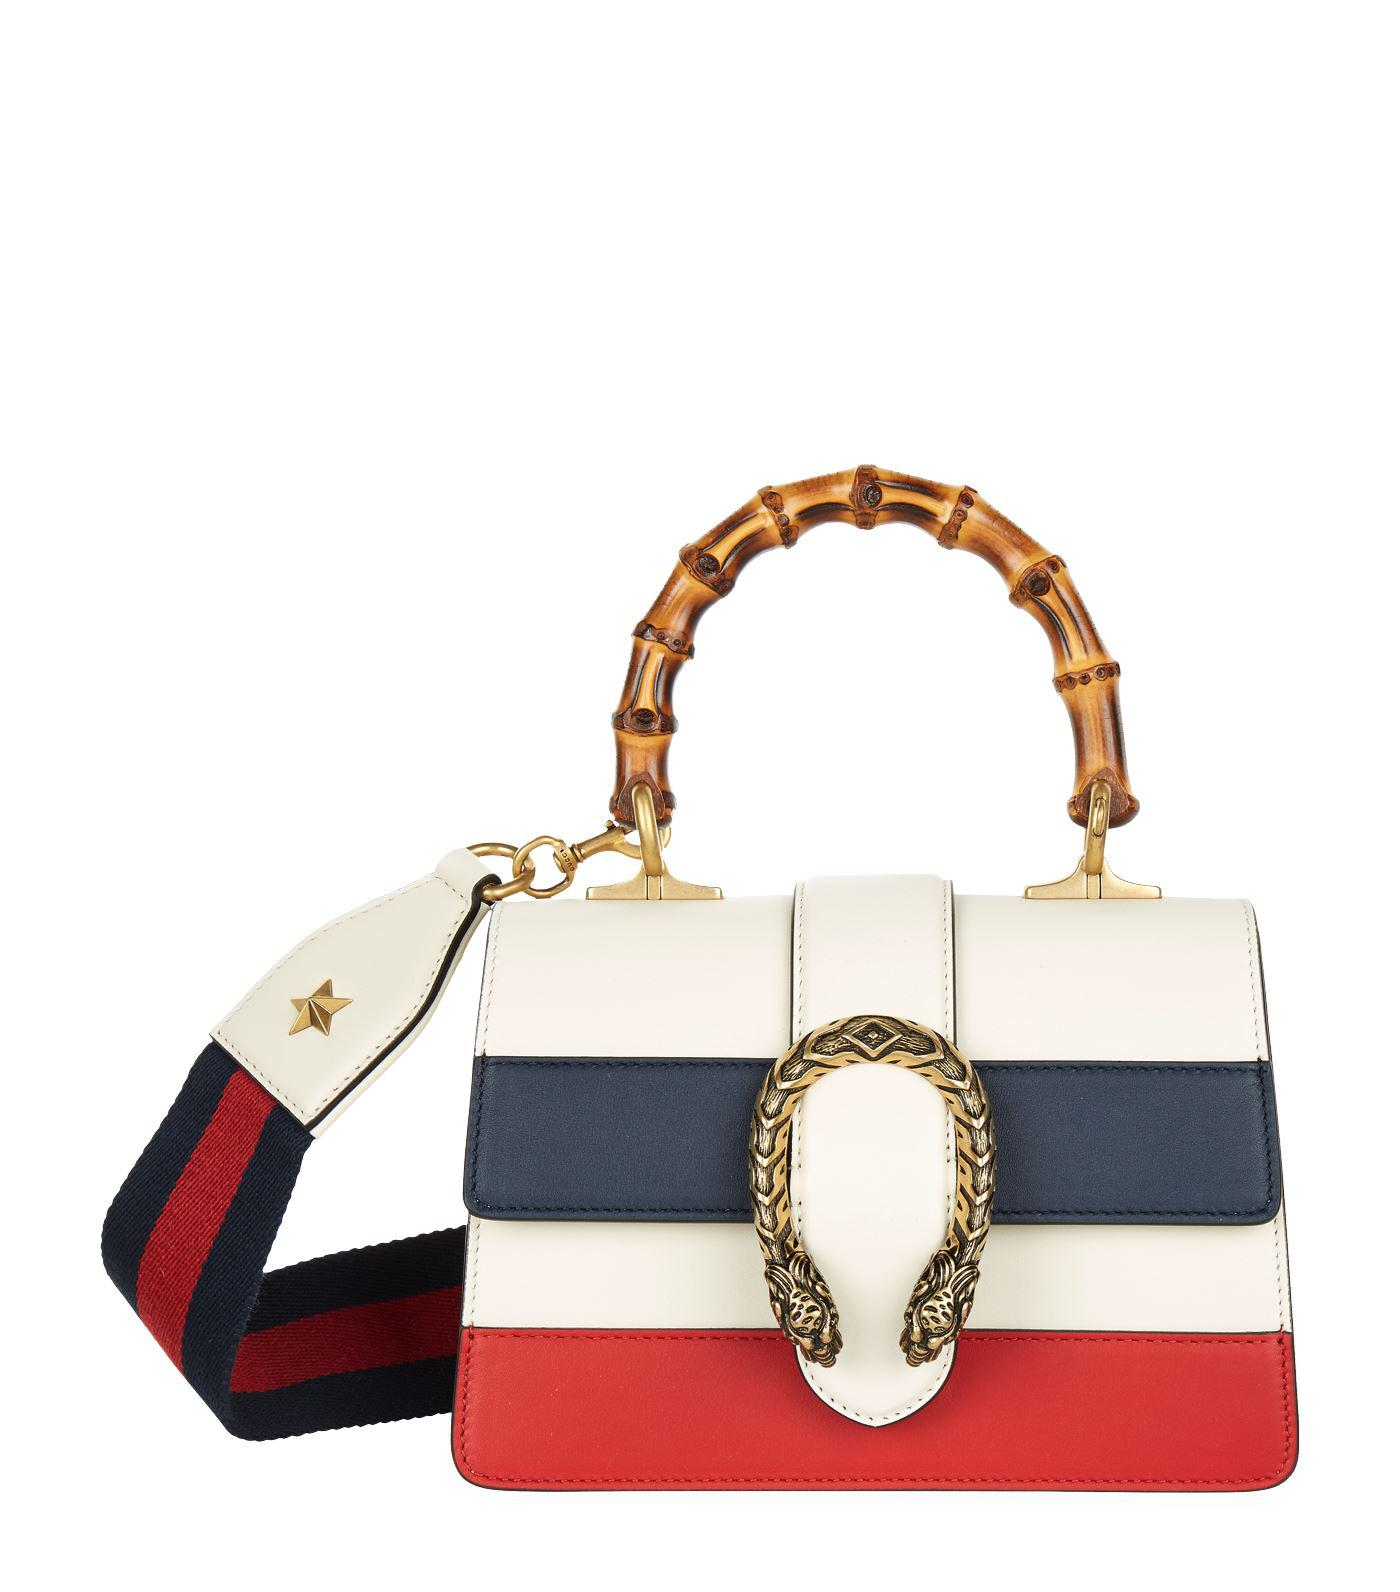 c32554624 Gucci Small Striped Dionysus Bamboo Top Handle Bag - Lyst